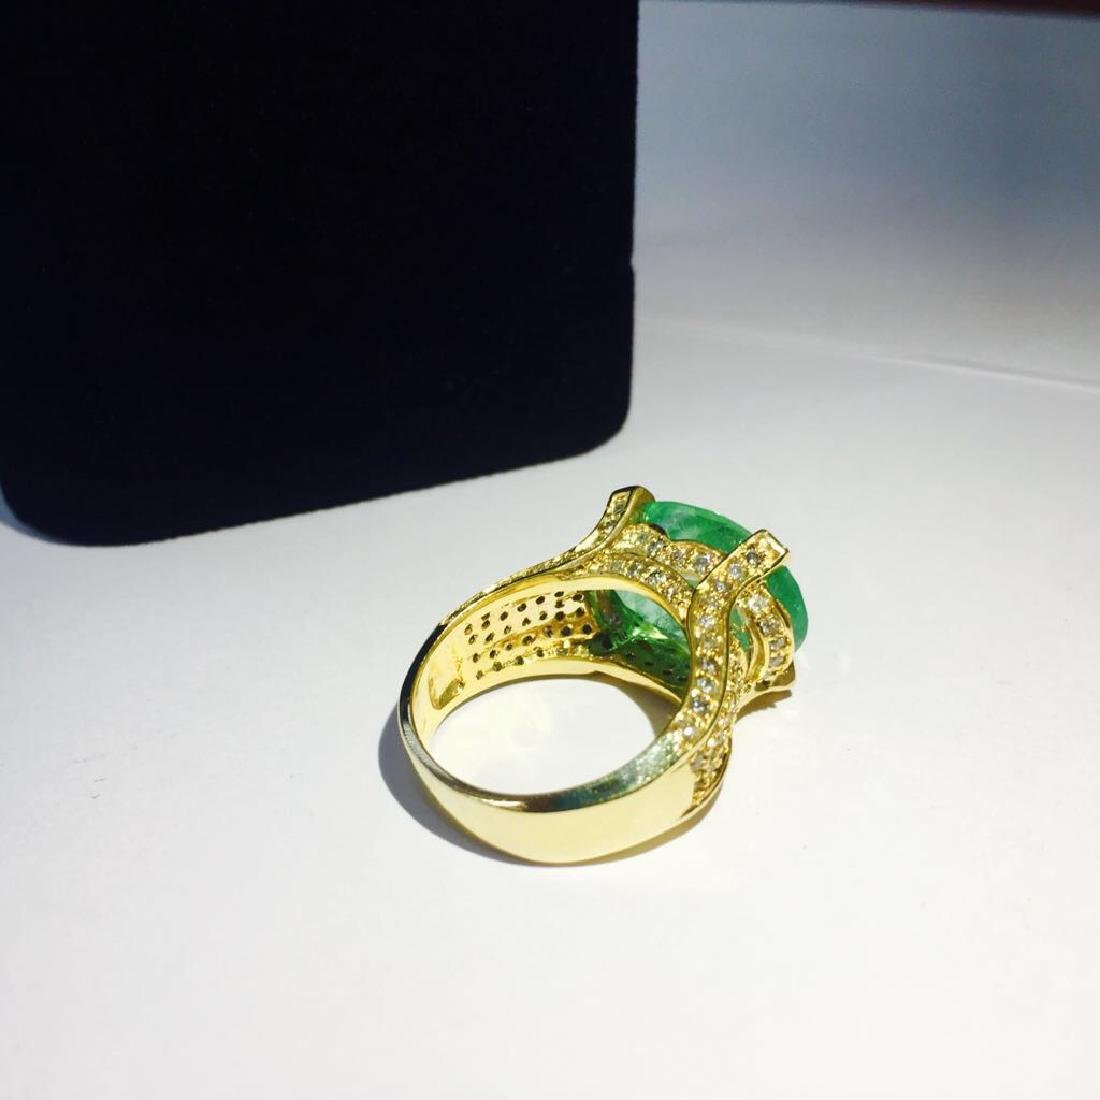 14K, 11.50 Carat Colombian Emerald and Diamond Ring - 3